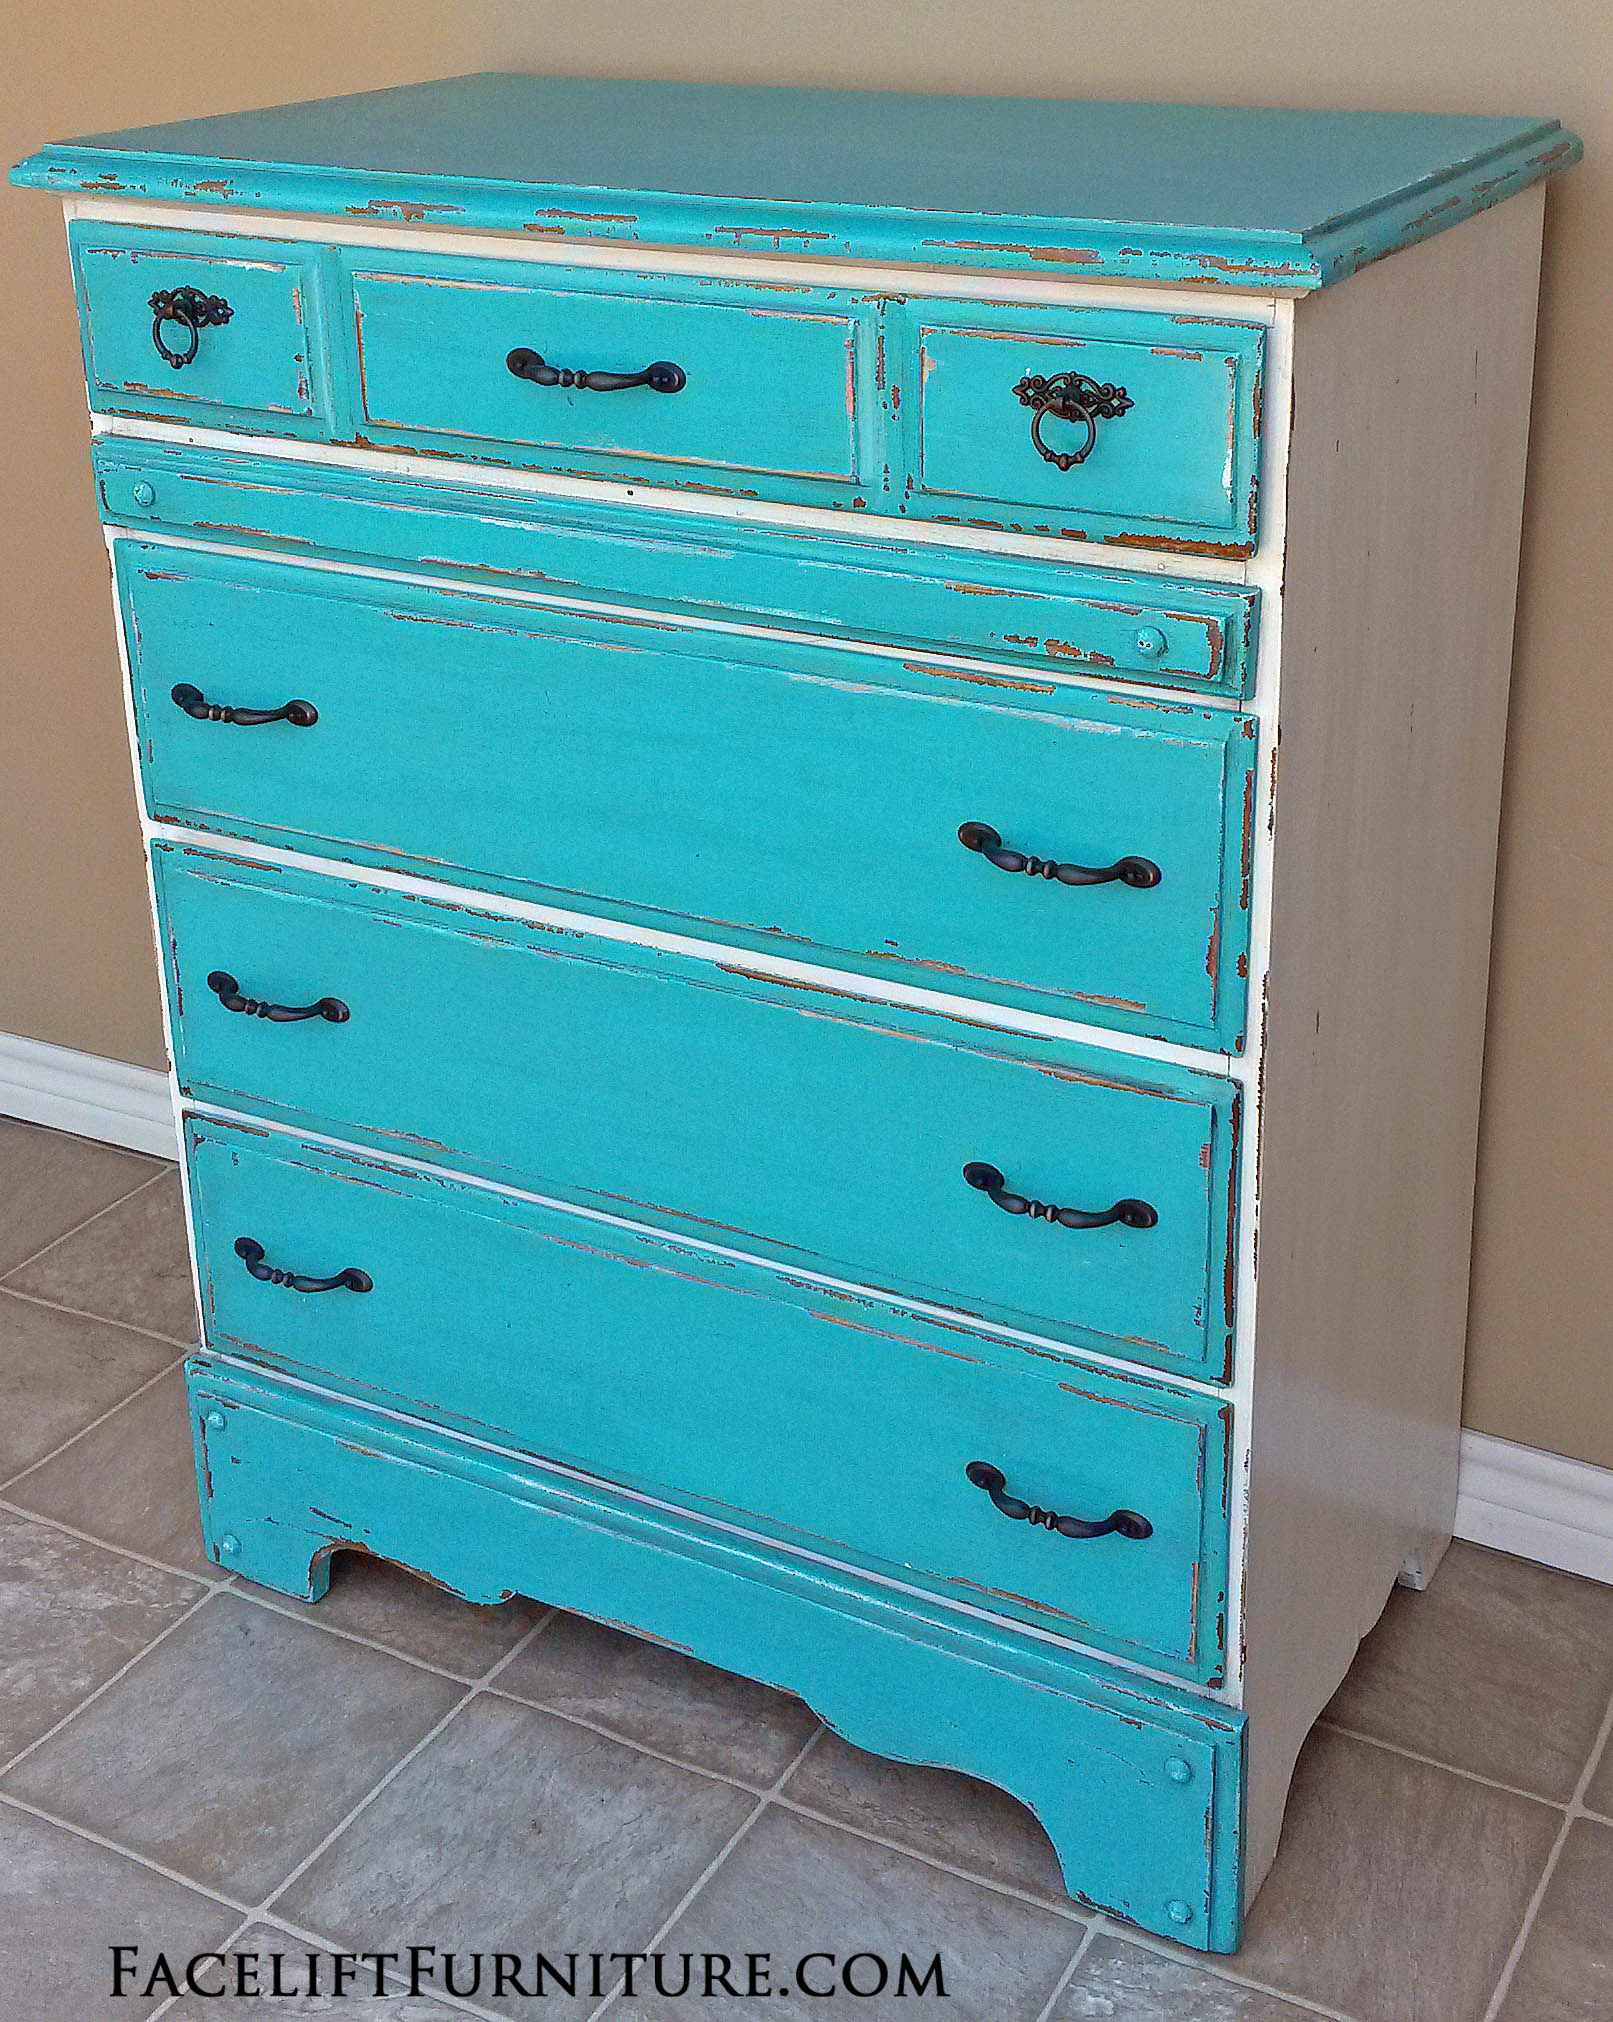 "Turquoise and Antiqued White Chest of Drawers with Espresso Glaze. Heavy chippy distressing. New oil rubbed bronze pulls. 40"" tall, 32.5"" wide, 18"" deep."